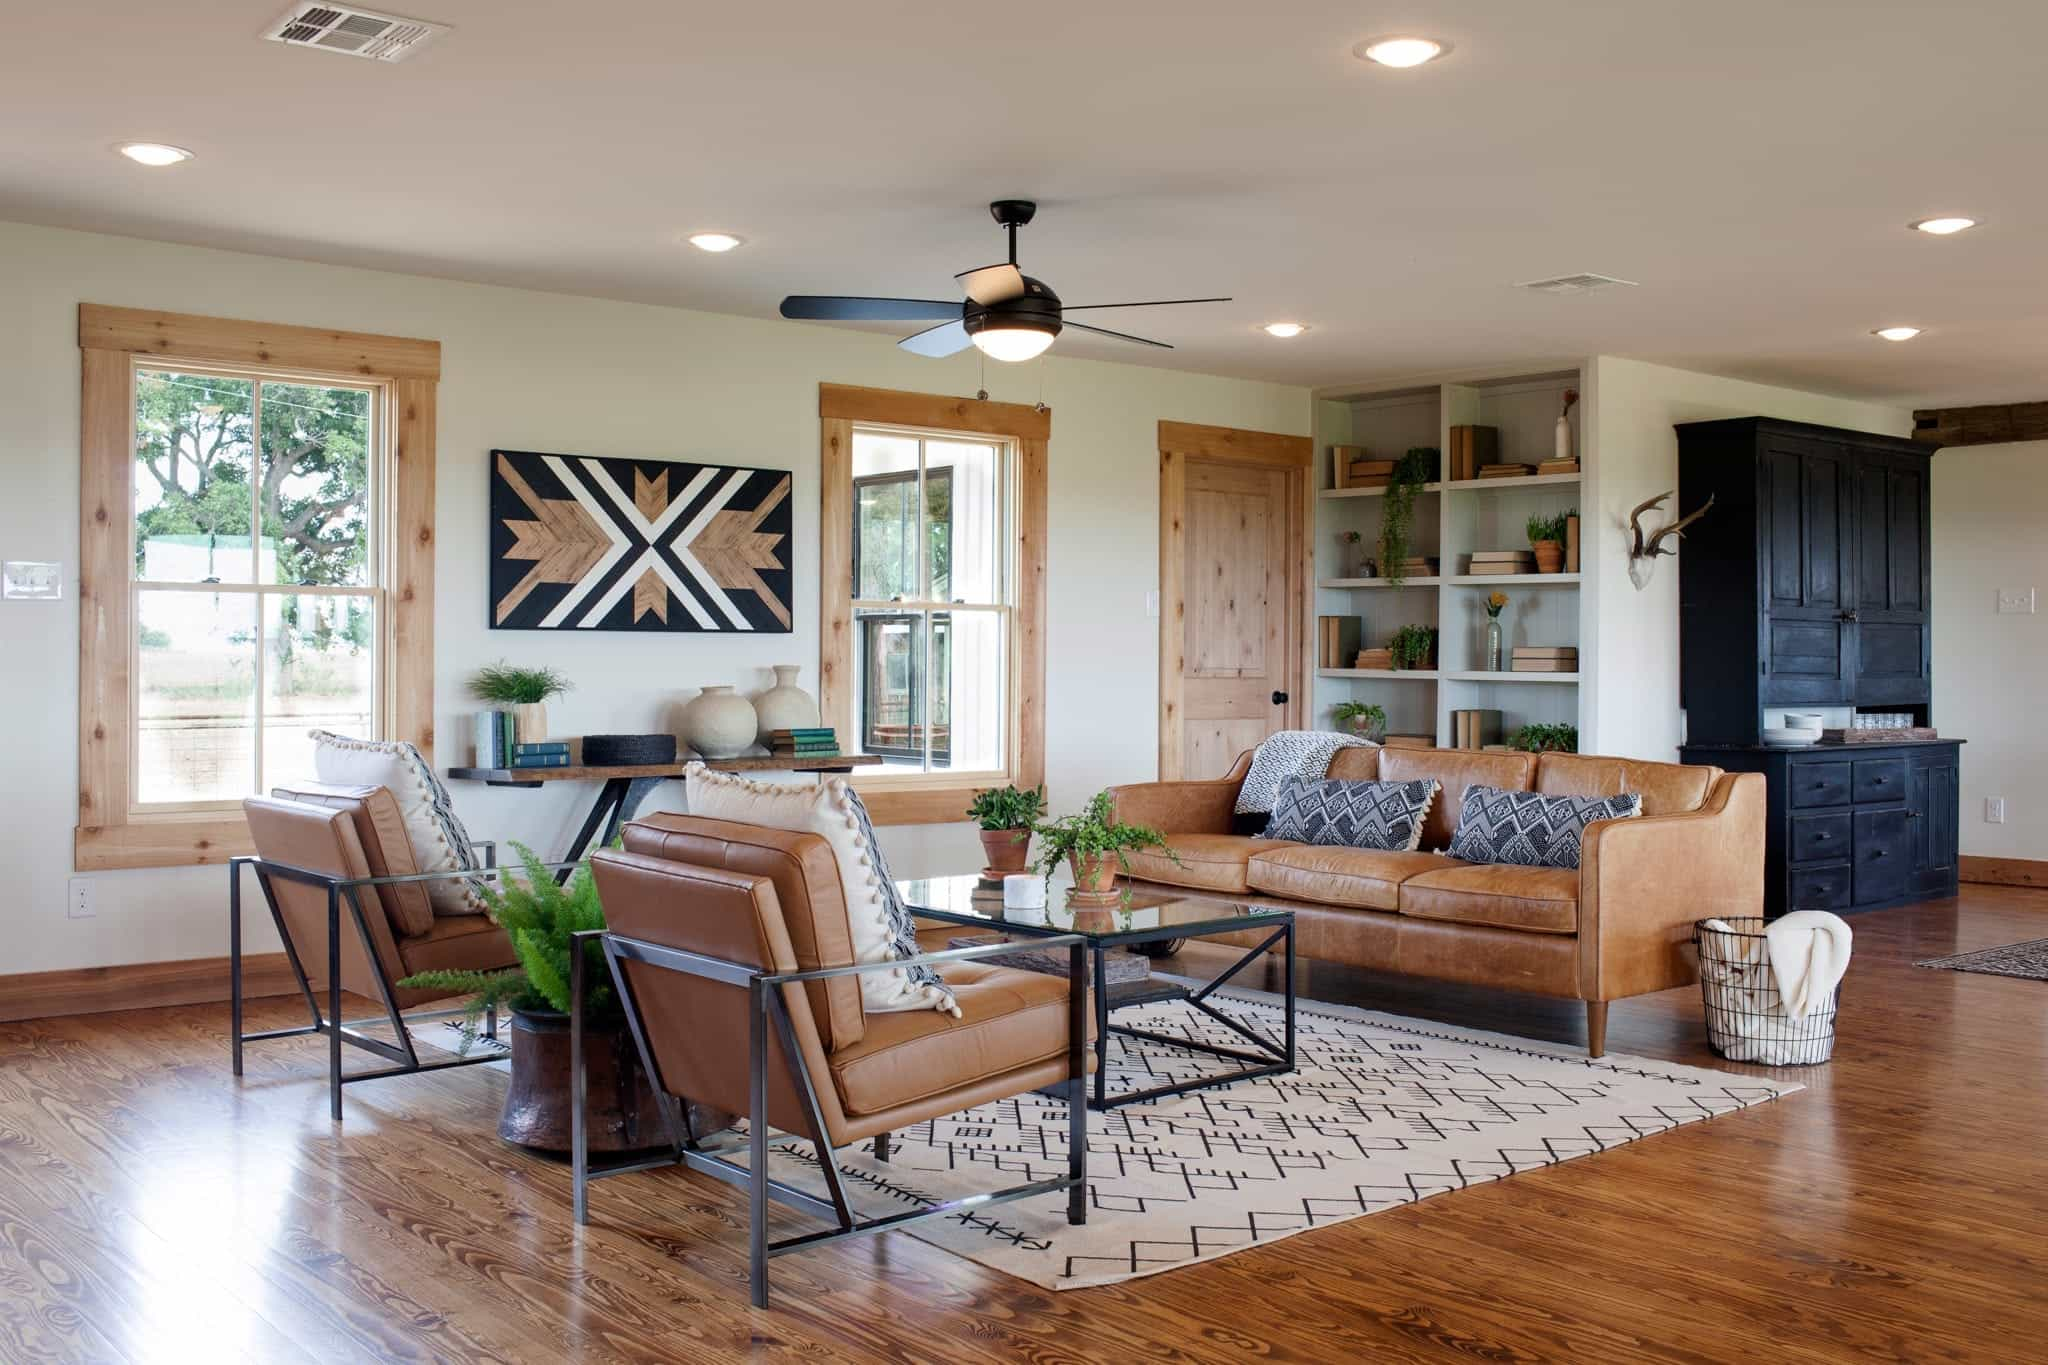 Wood Floors And Graphic Carpet Add Brightness To Living Room (Image 12 of 13)